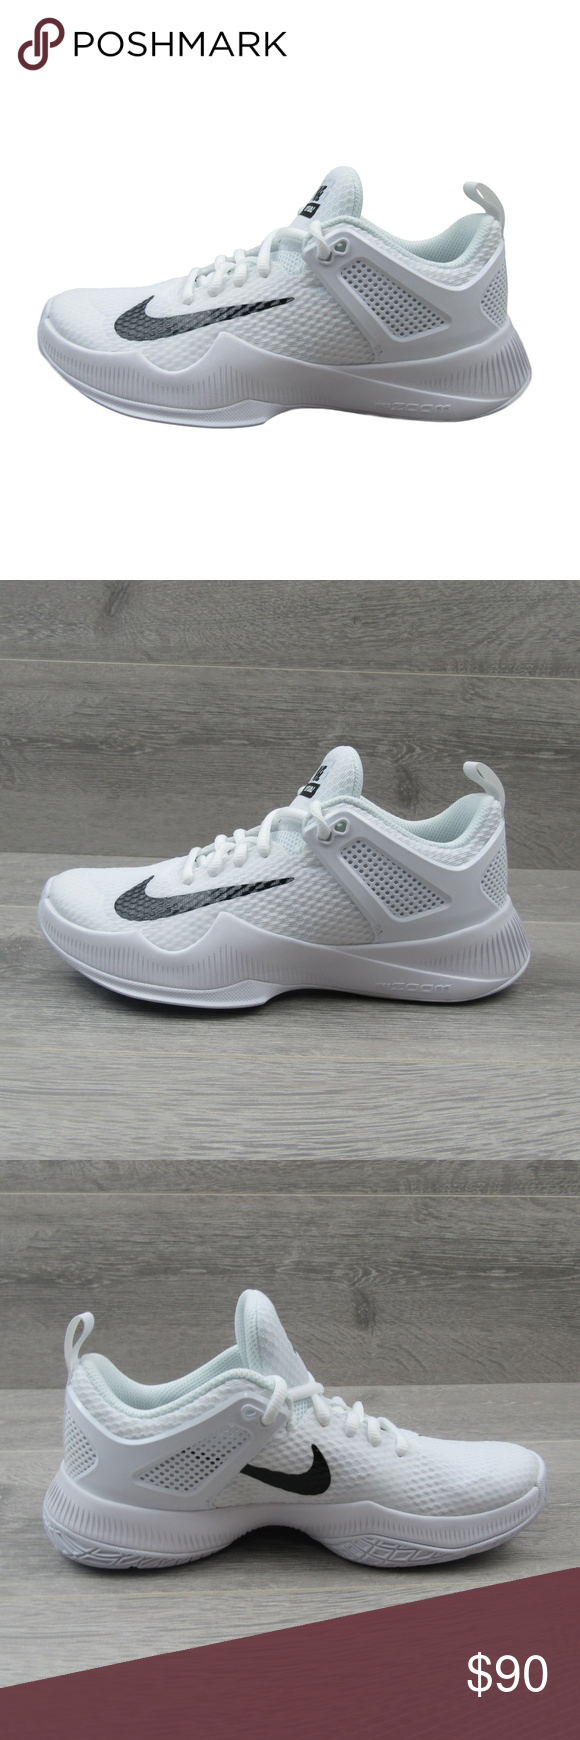 a2a4b6be7878 Nike Air Zoom Hyperace Size 6.5 Volleyball Shoes Nike Air Zoom Hyperace  Volleyball Shoes White Style - 902367-100 Women s Size 6.5 New without  Original Box ...